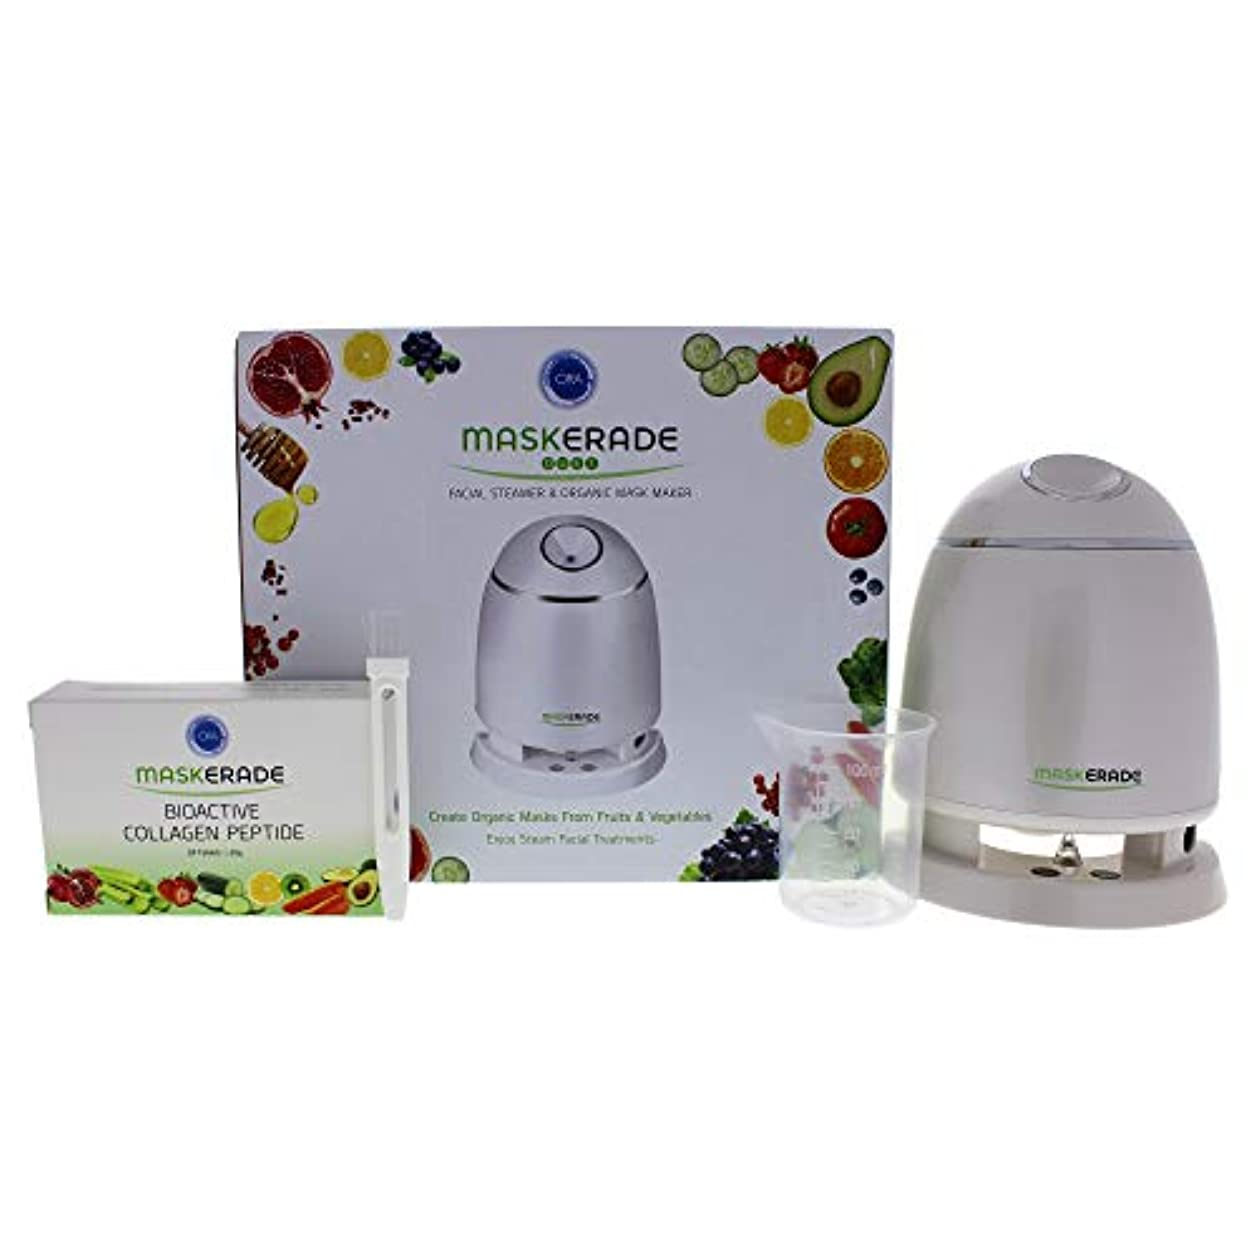 Maskerade Duet Facial Steamer and Organic Mask Maker - White